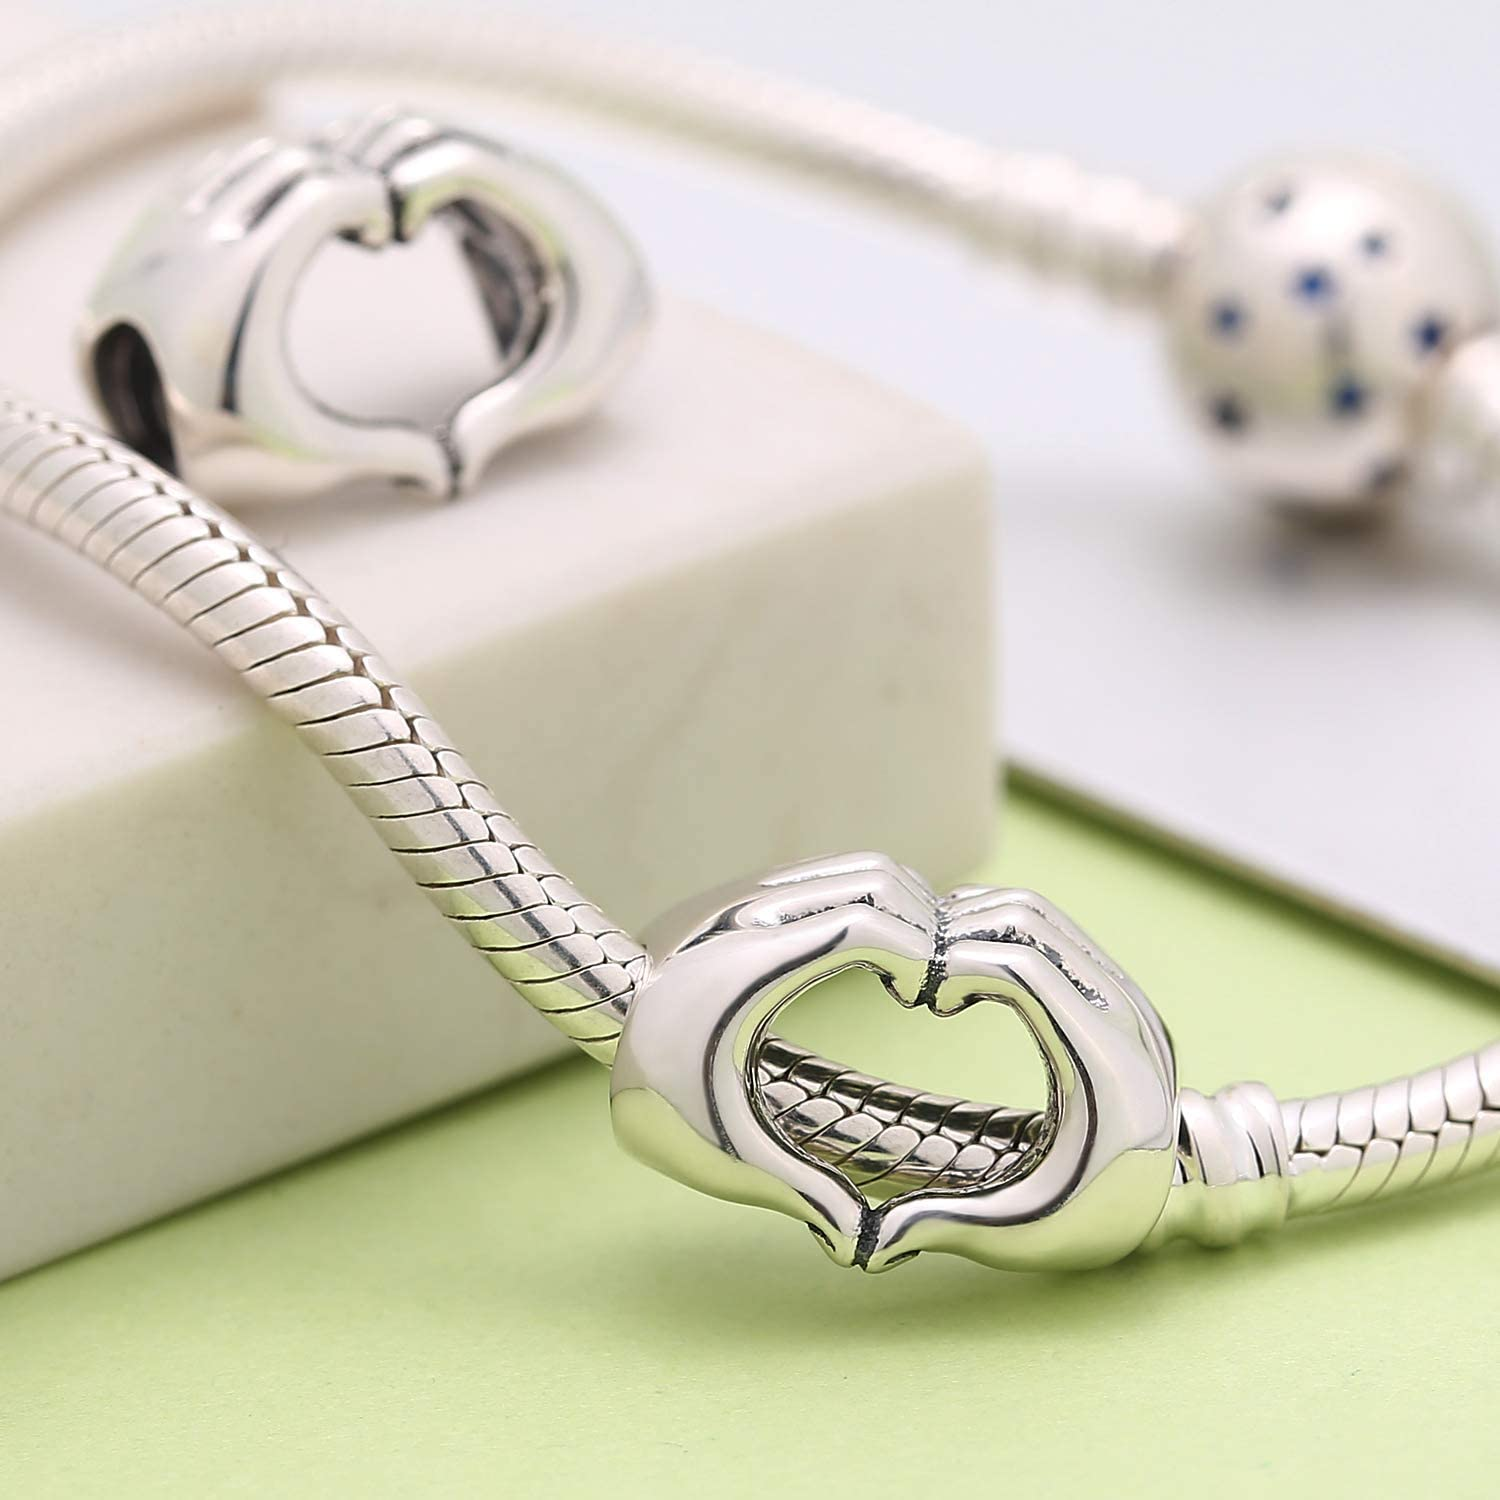 Love Heart Charms JH913 Valentines Charms Heart Charms 5 Sterling Silver Love Charms 925 Silver Love Charms